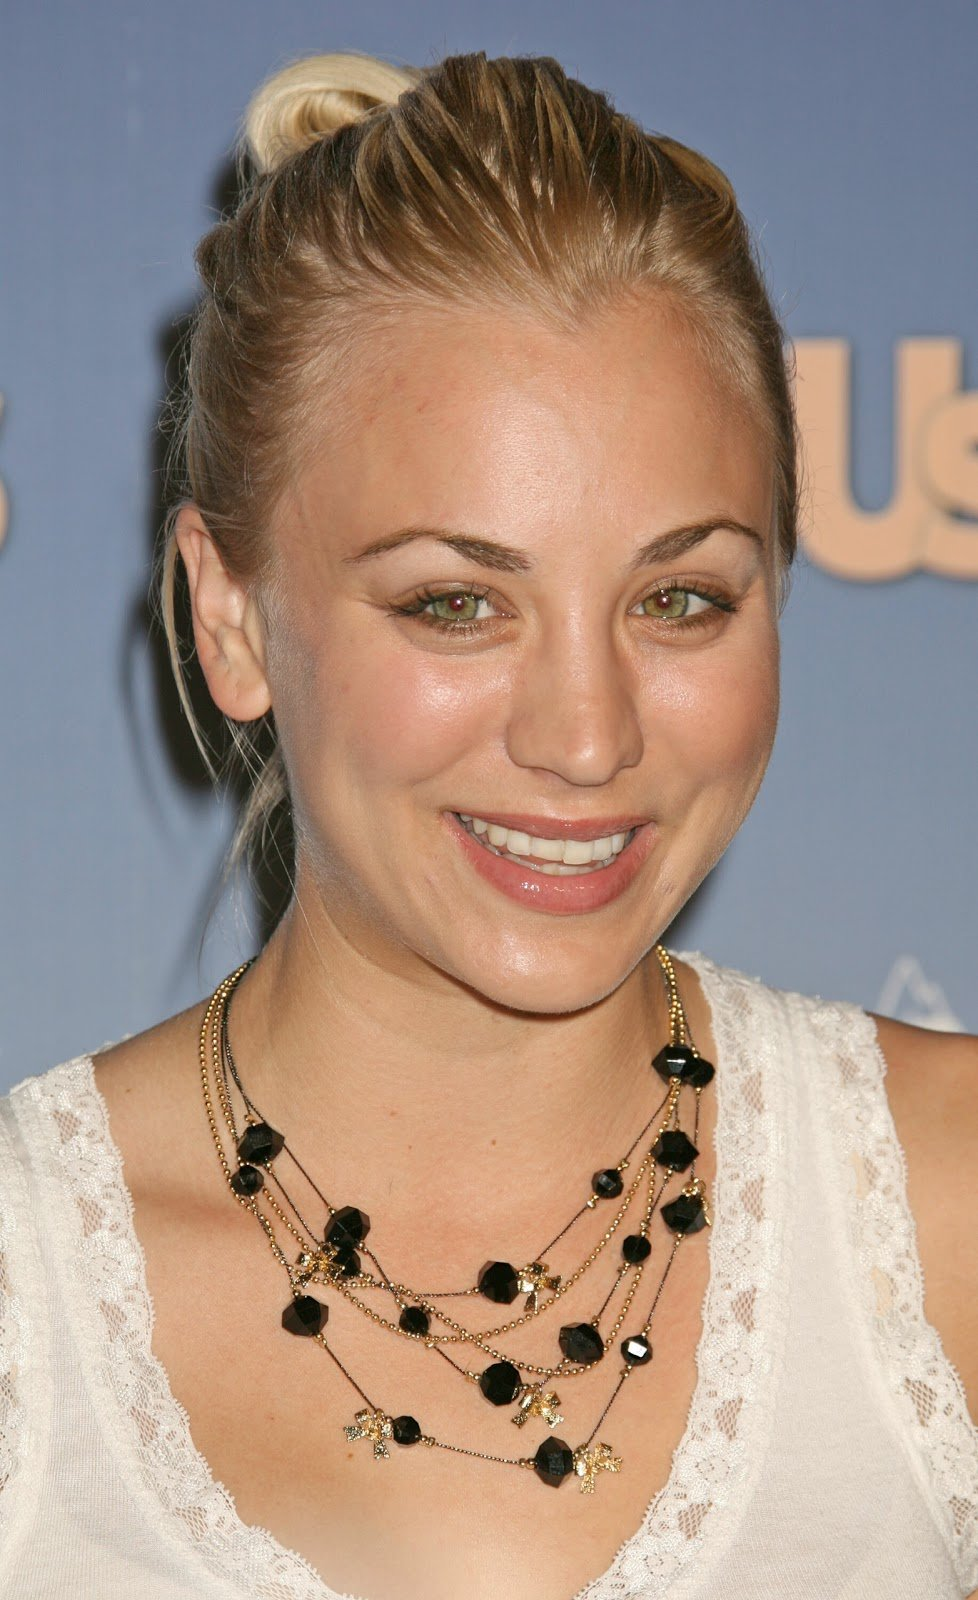 Free All About Hollywood Celebrity Kaley Cuoco Hairstyle Pictures Wallpaper